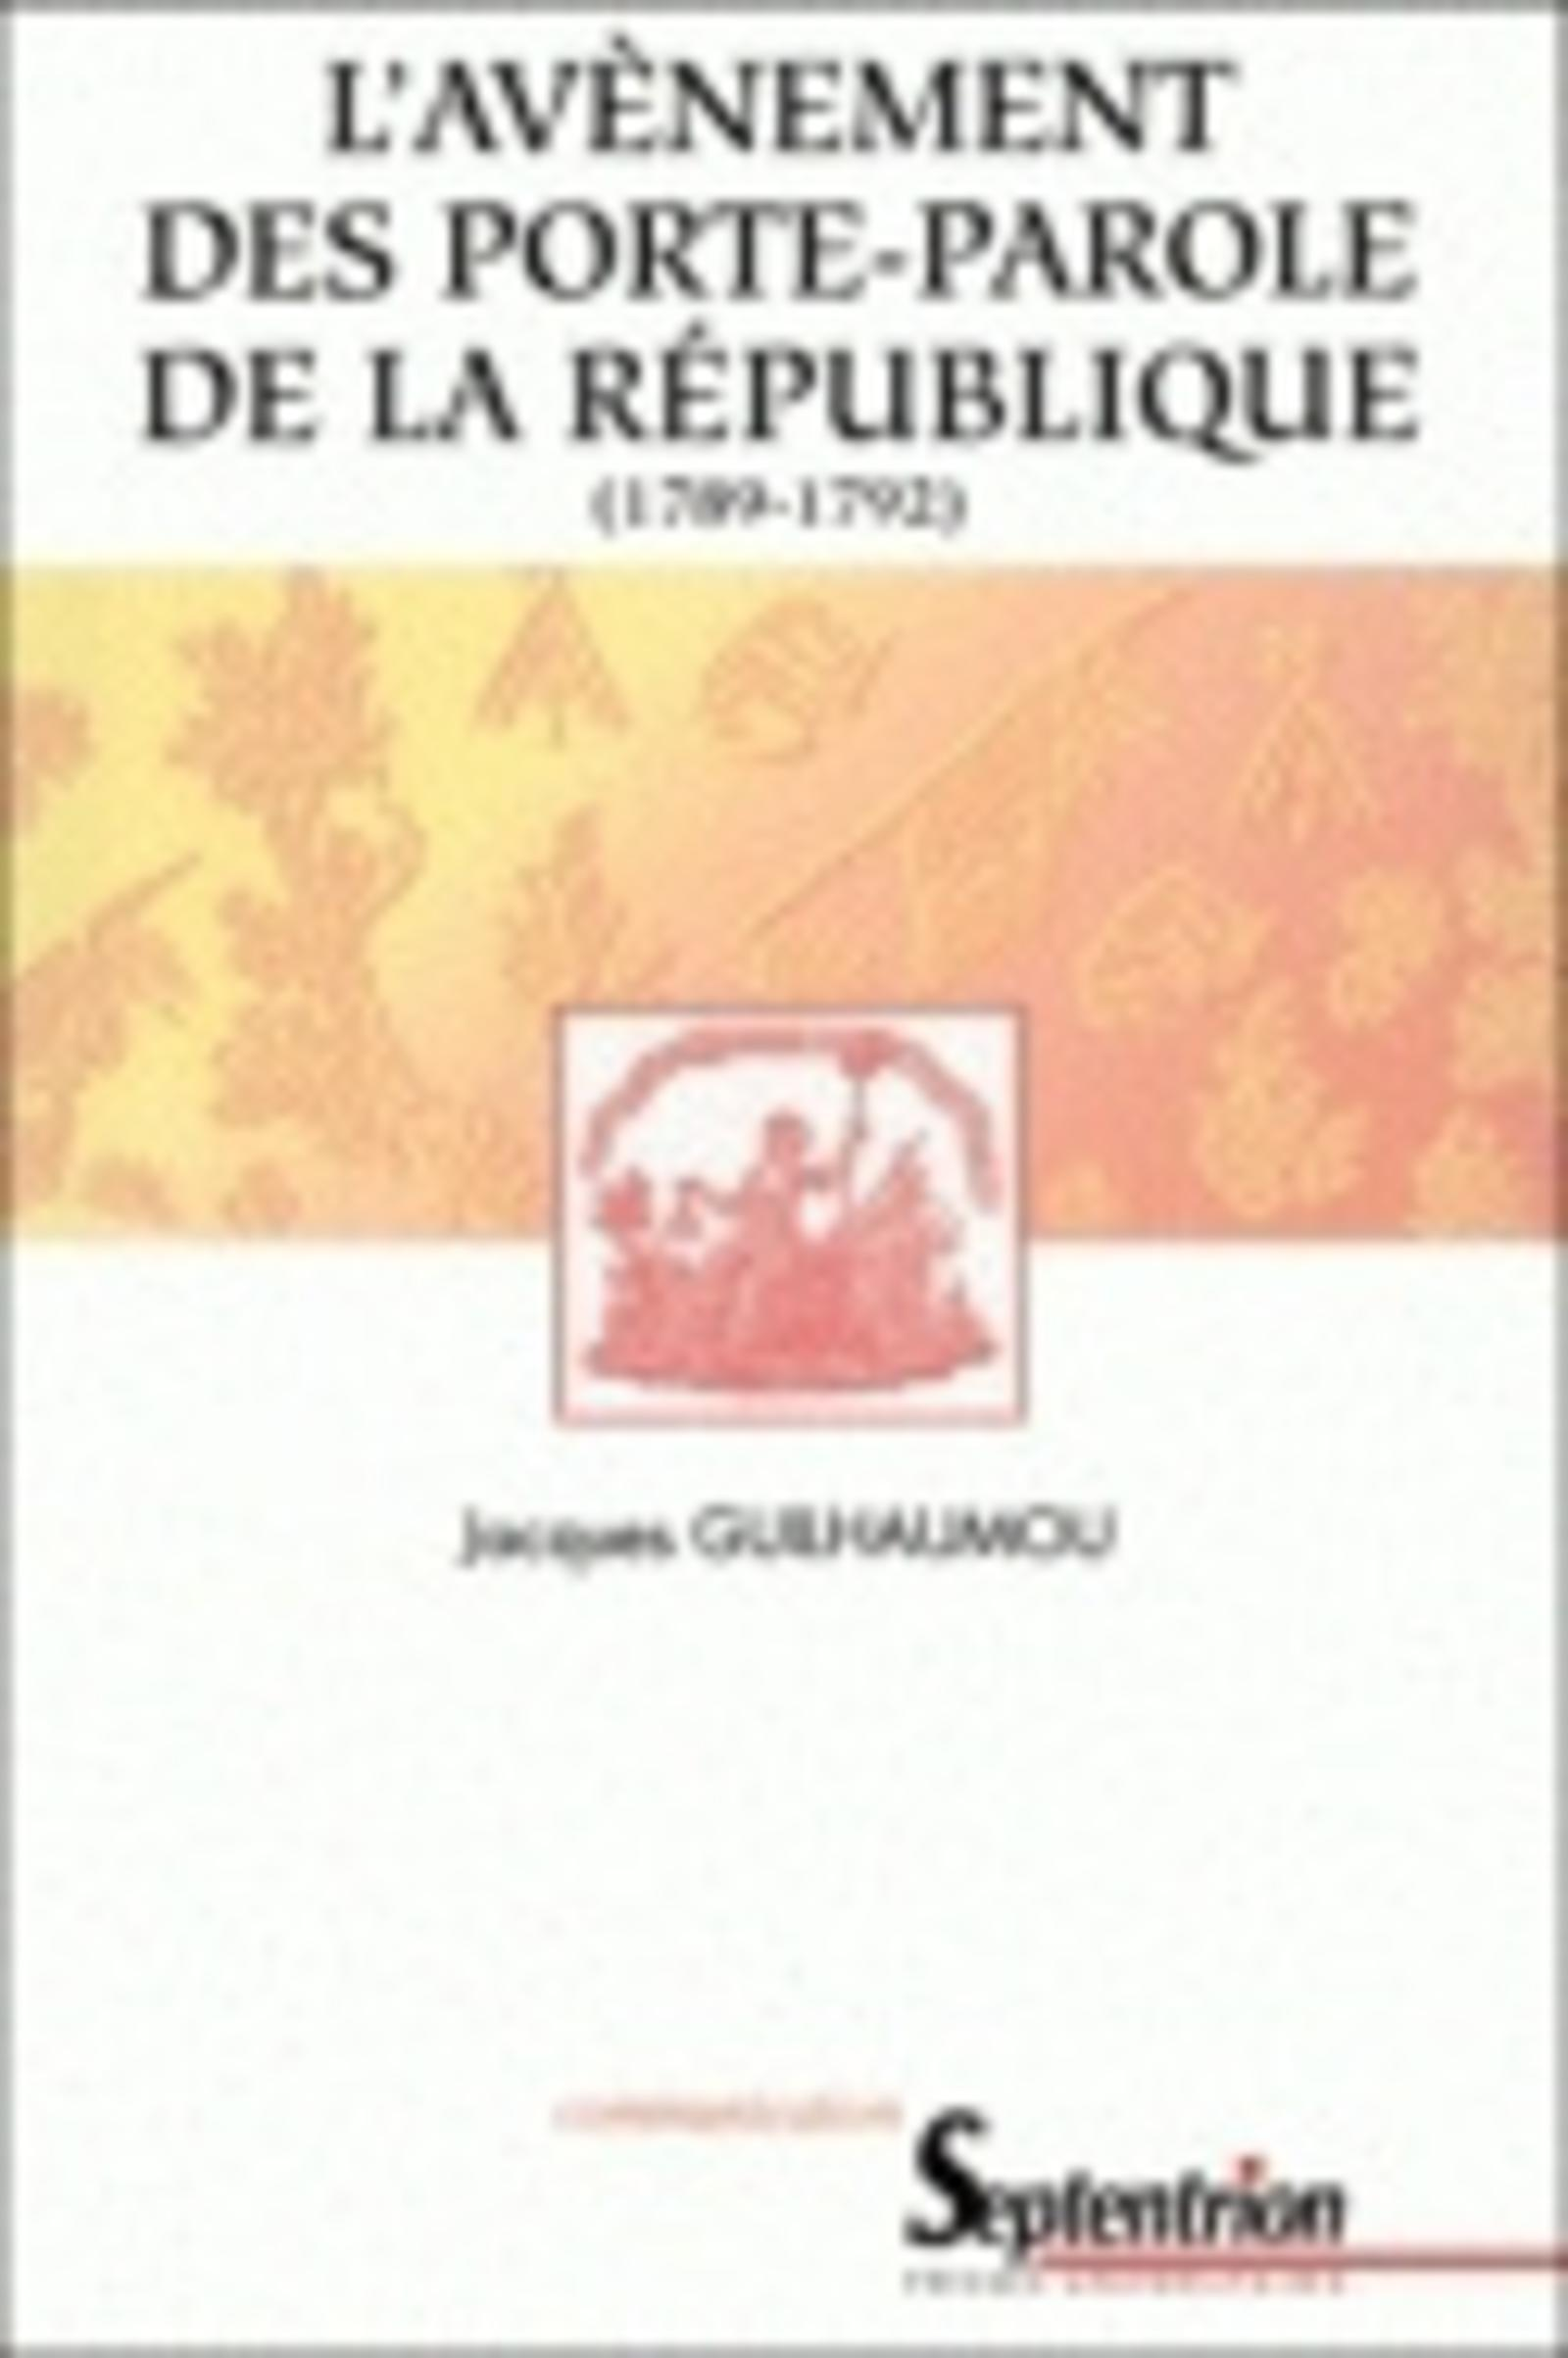 L''AVENEMENT DES PORTE-PAROLE DE LA REPUBLIQUE (1789-1792)